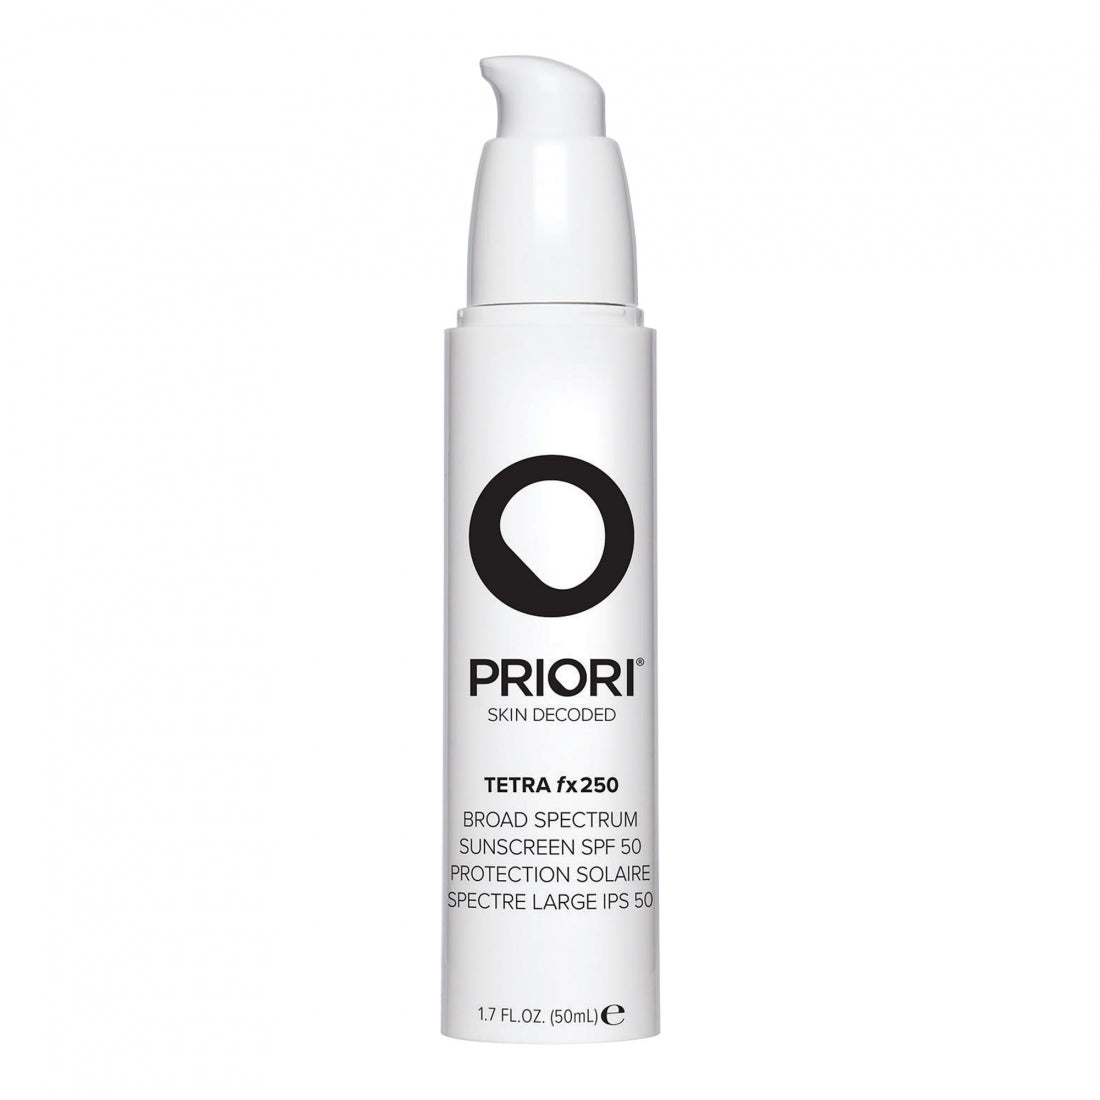 Priori TETRA - fx250 SPF45 Broad Spectrum Universal 50ml